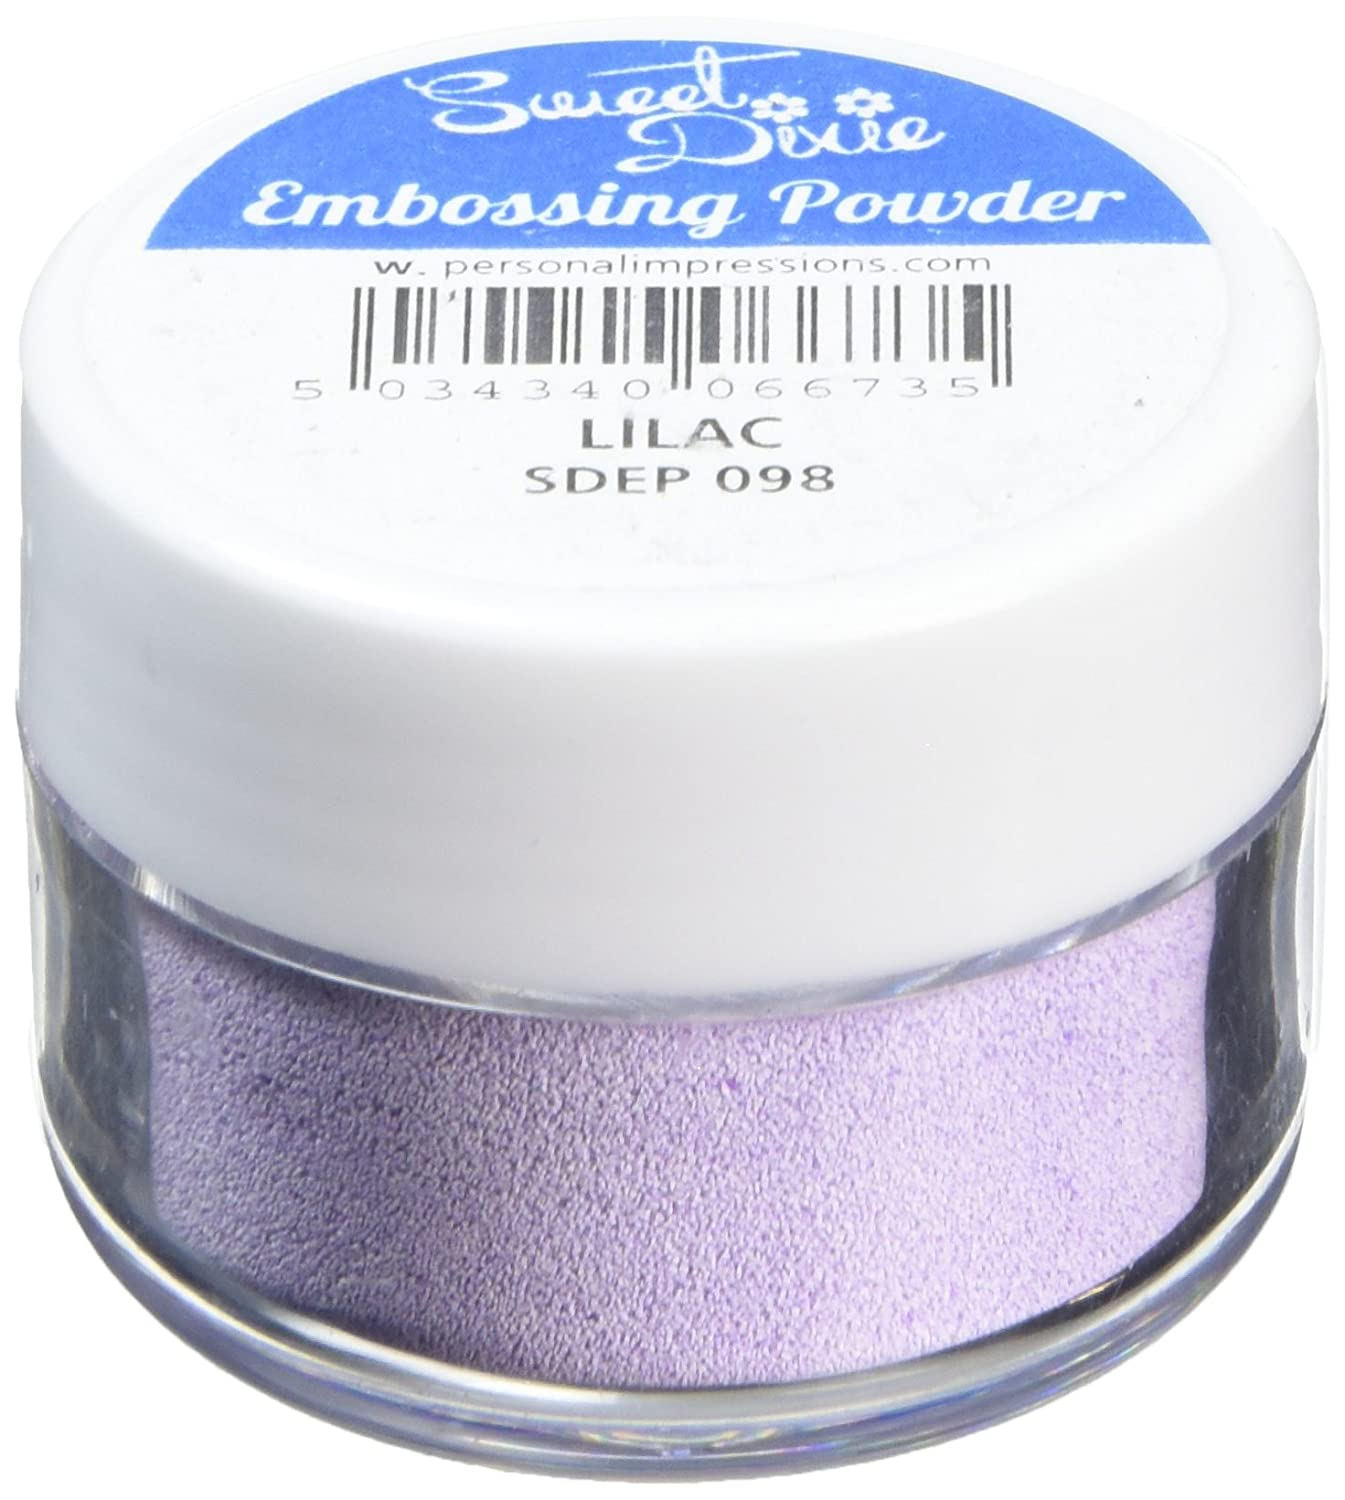 Sweet Dixie Embossing Powder Lilac SDEP 098